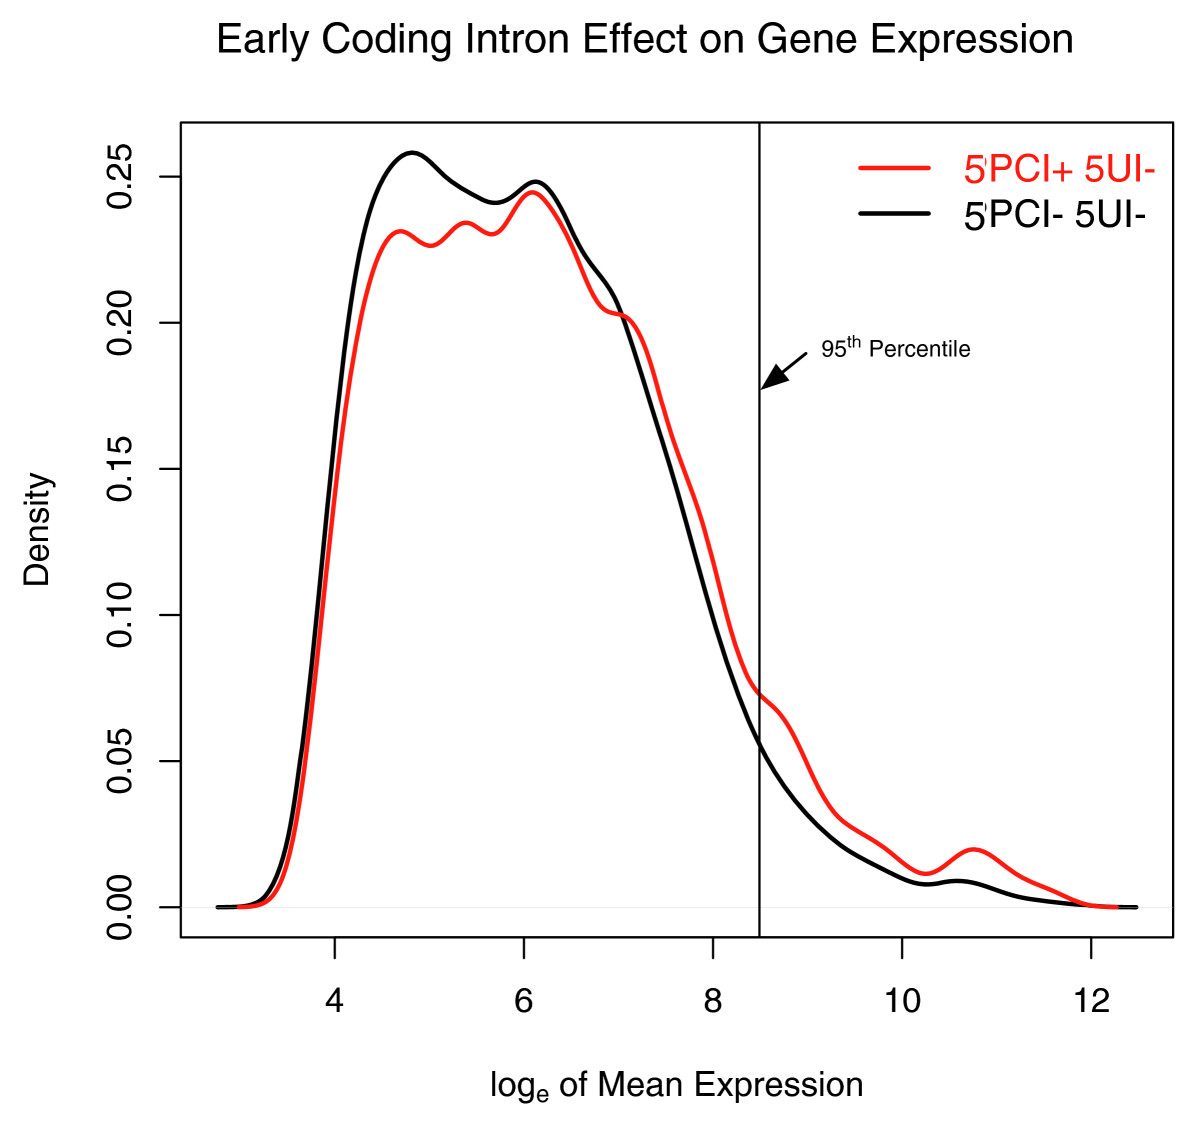 https://static-content.springer.com/image/art%3A10.1186%2Fgb-2010-11-3-r29/MediaObjects/13059_2010_Article_2322_Fig6_HTML.jpg